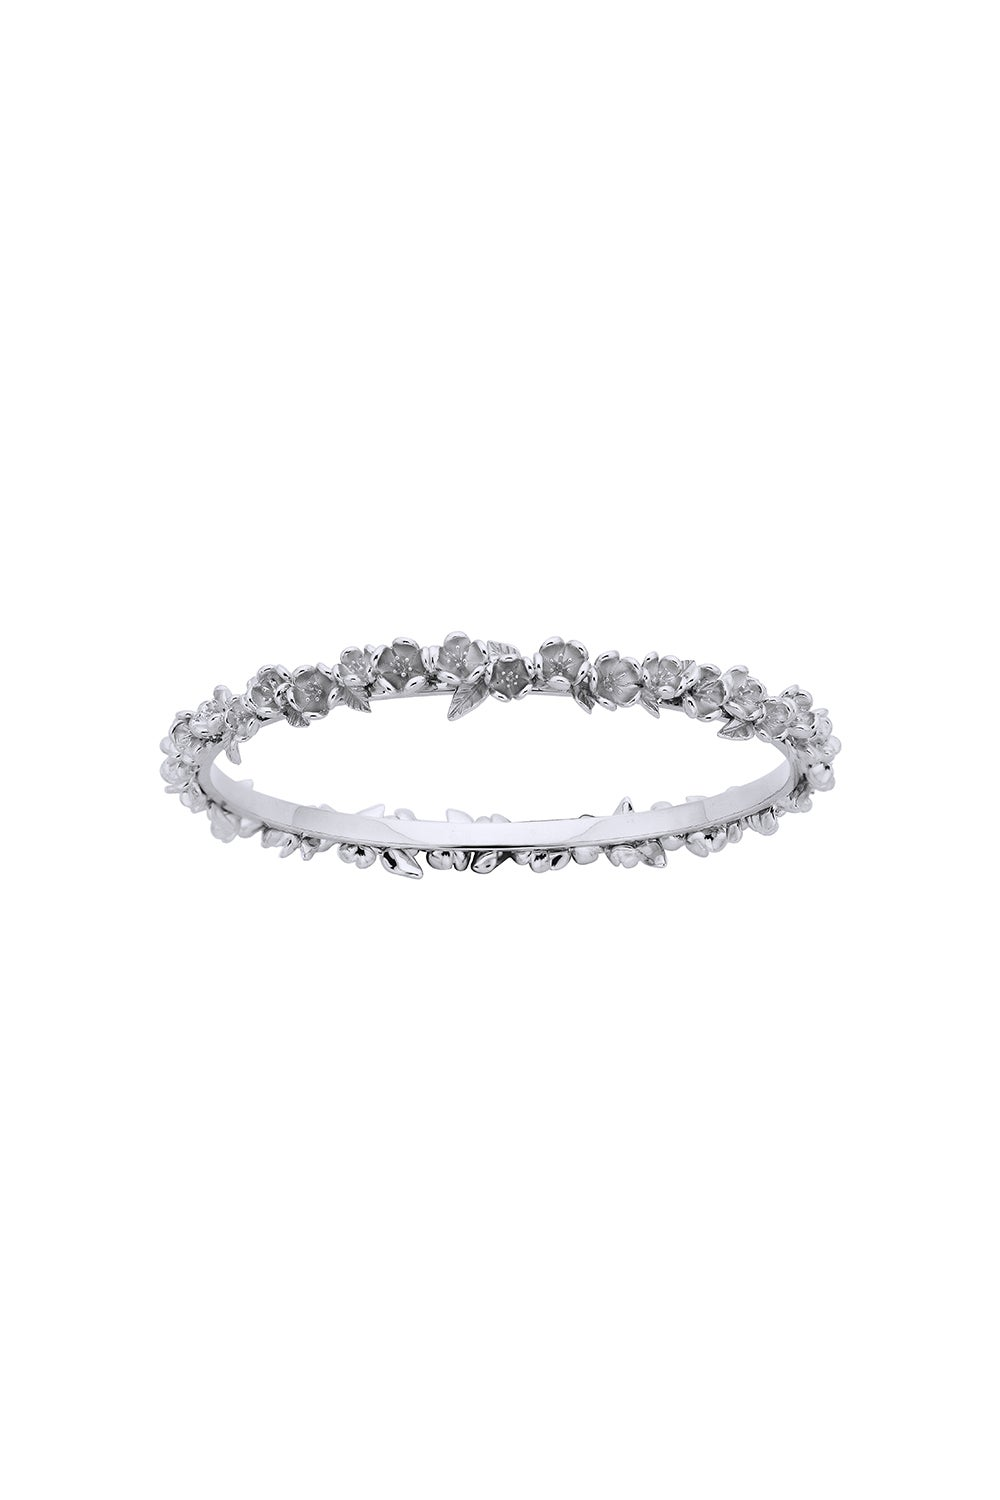 Wreath Bangle Silver 60mm